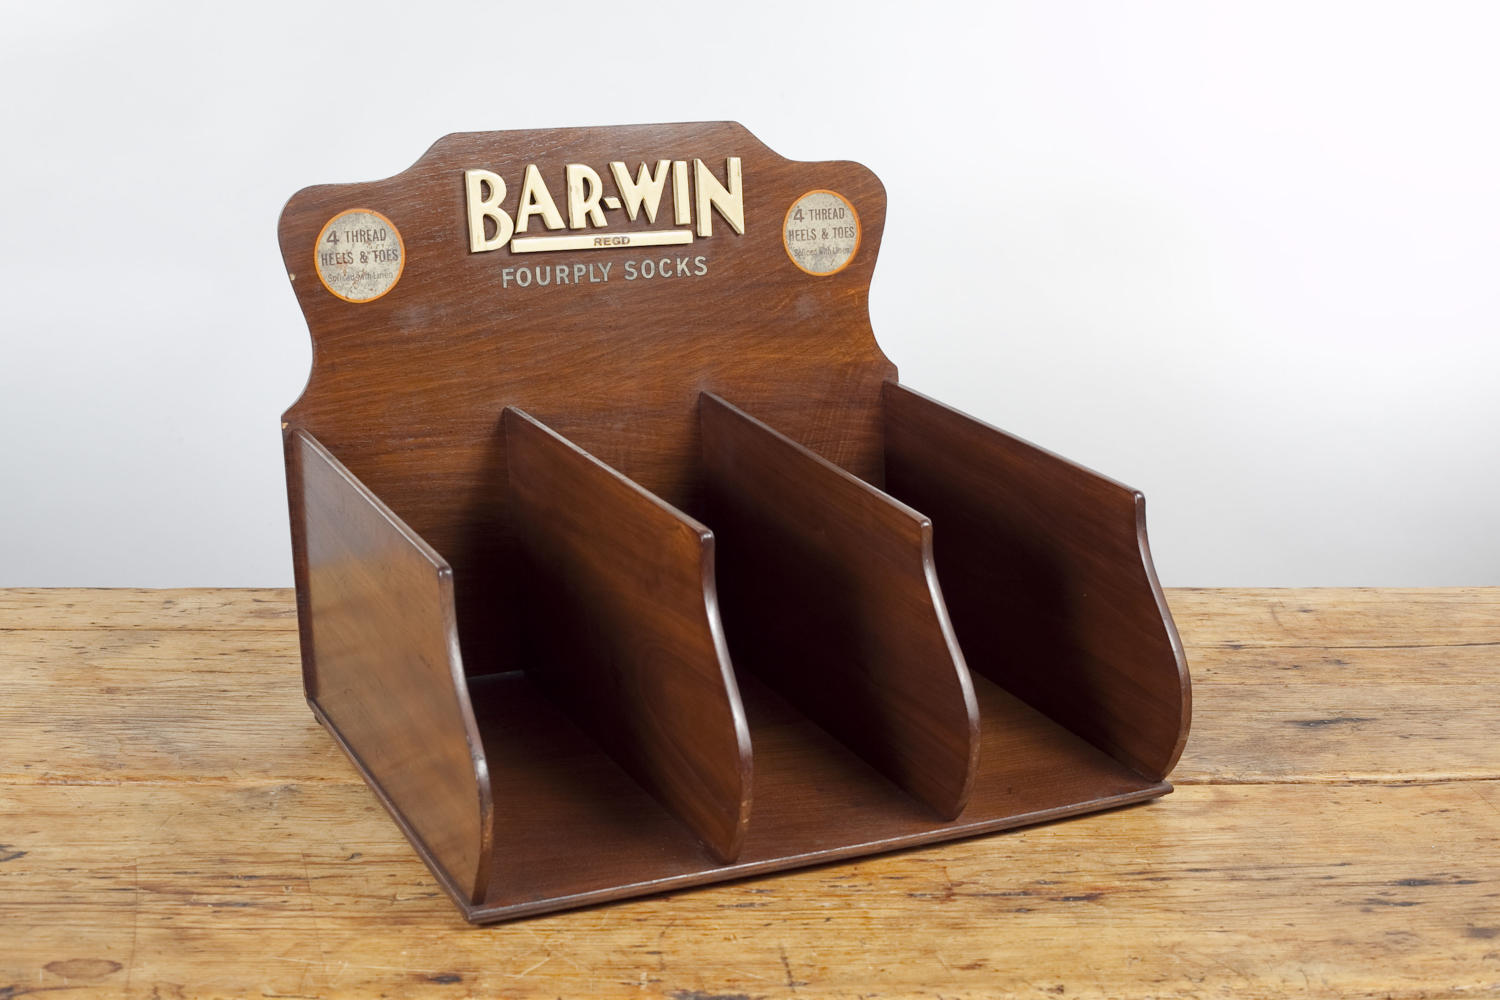 Vintage Bar-Win shop display stand